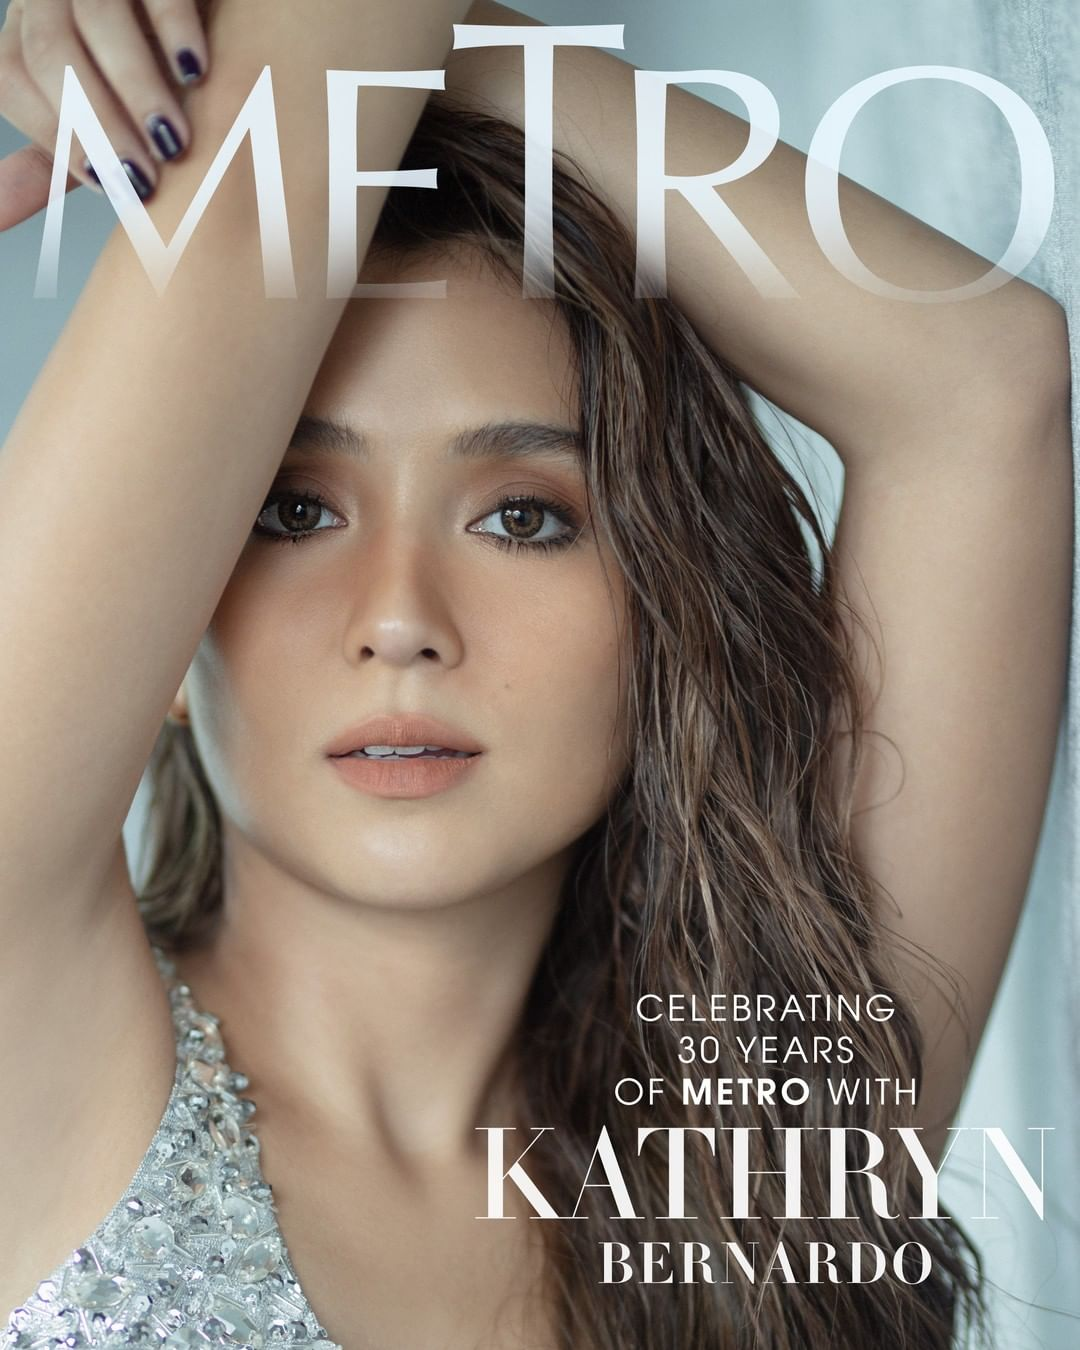 Kathryn Bernardo for #Metro30's anniversary issue